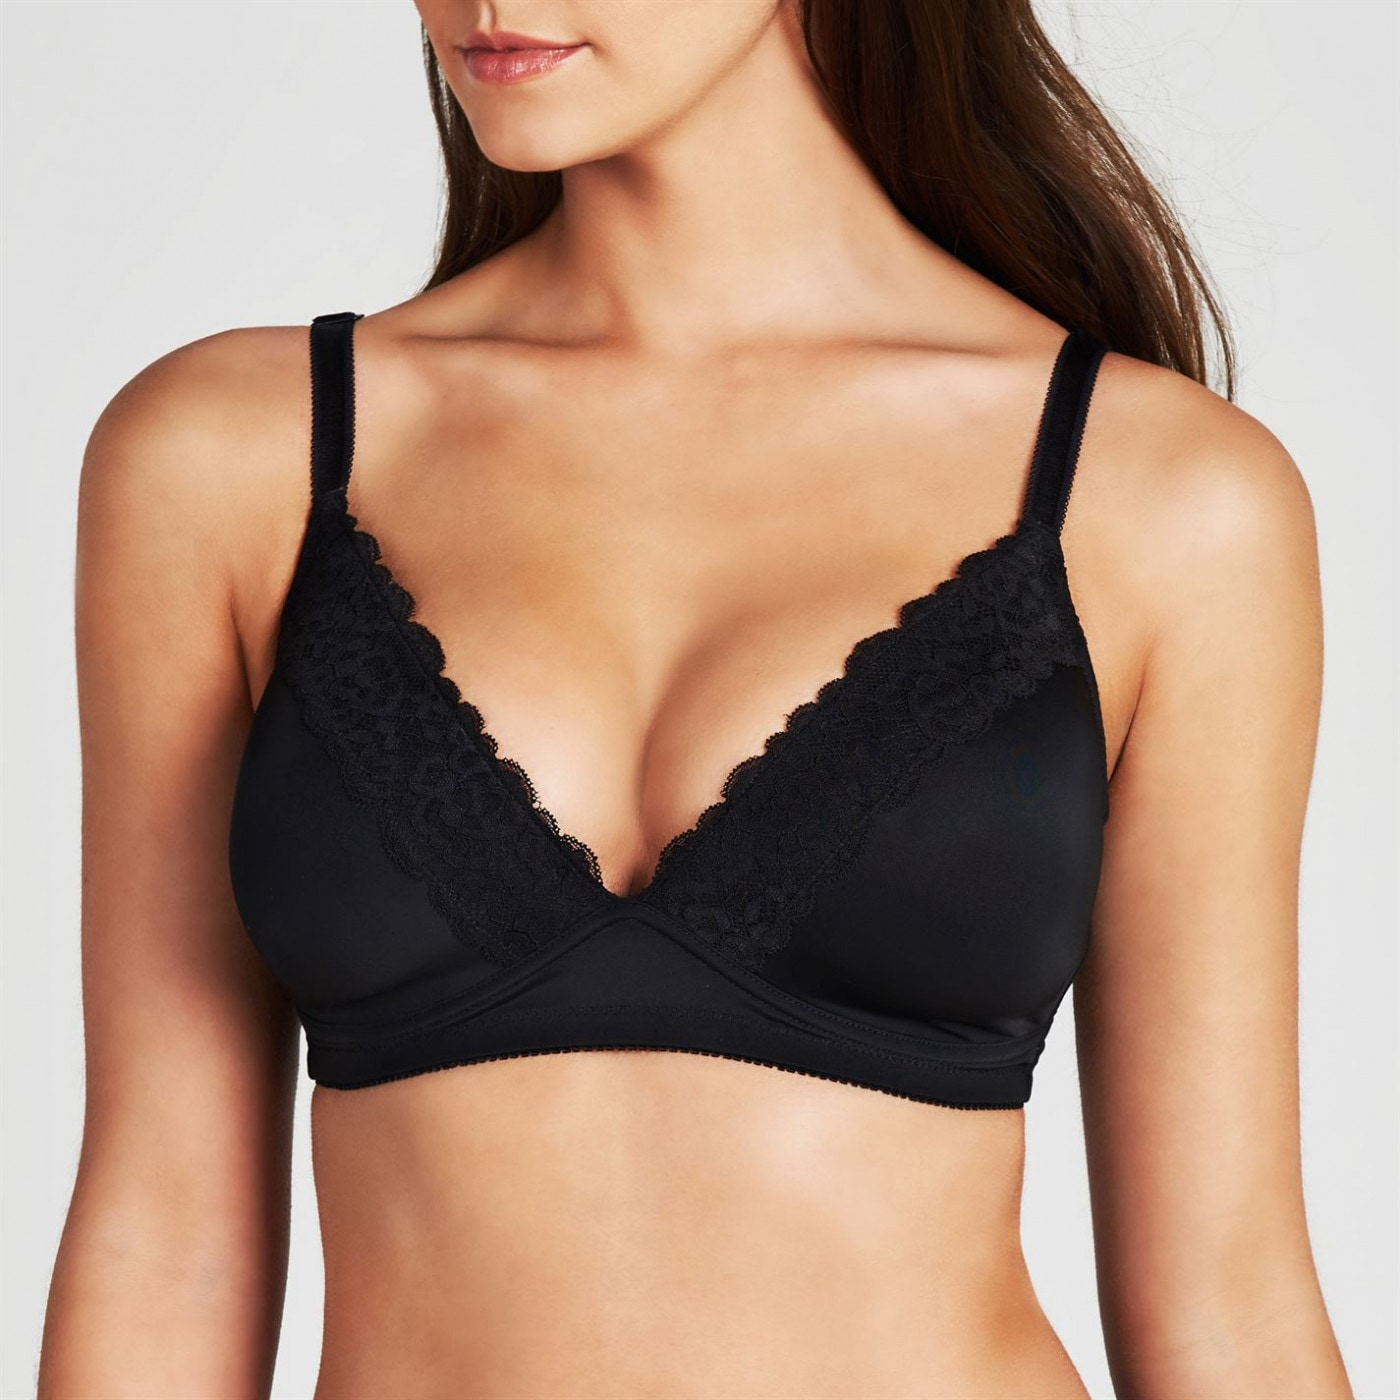 Miso Lace Non Wired Bra Ladies